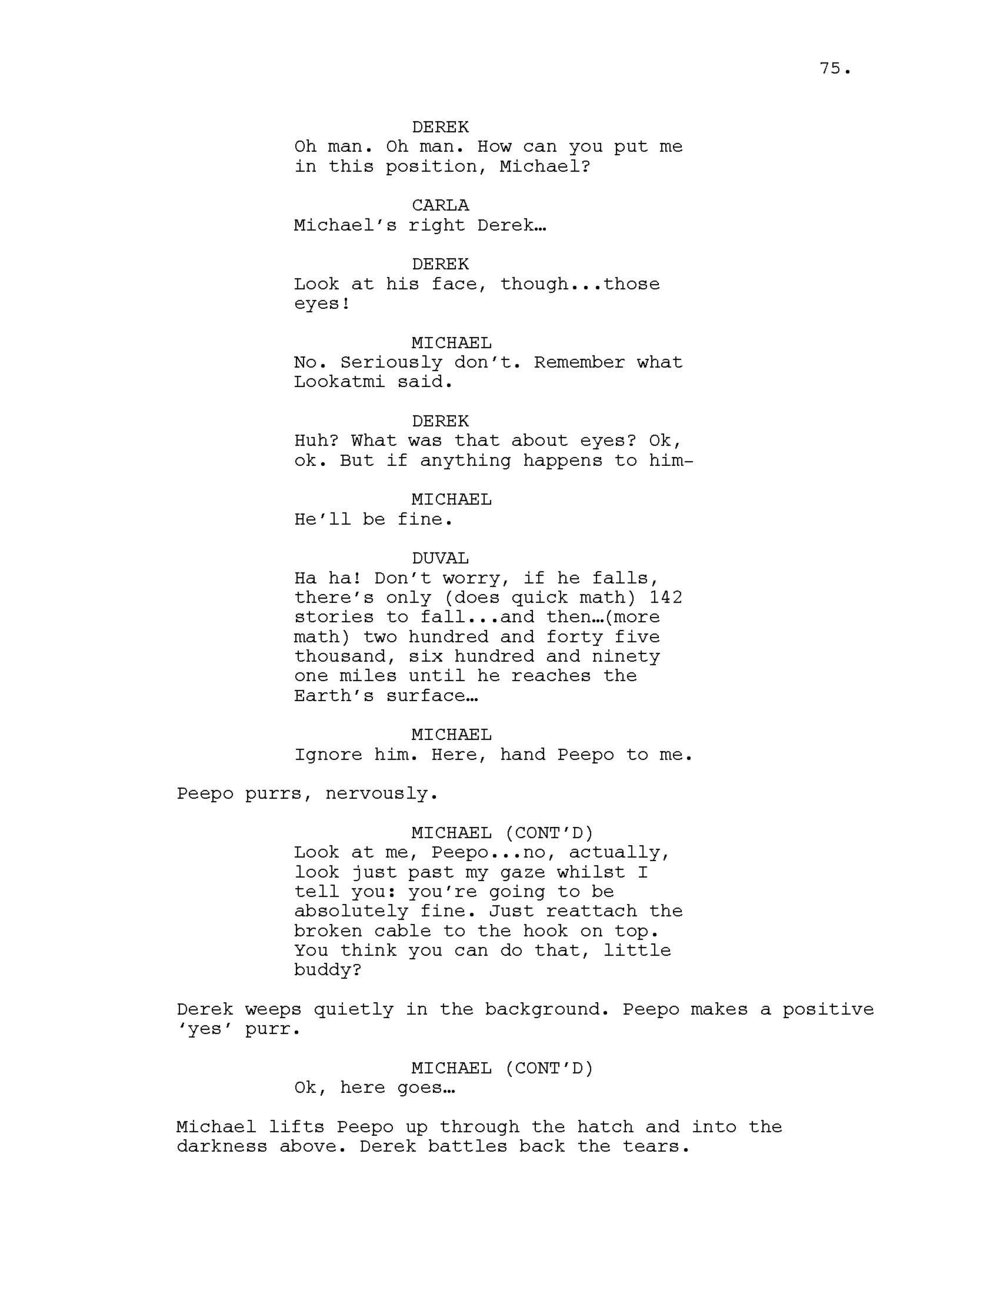 INVISIBLE WORLD SCRIPT_Page_076.jpg